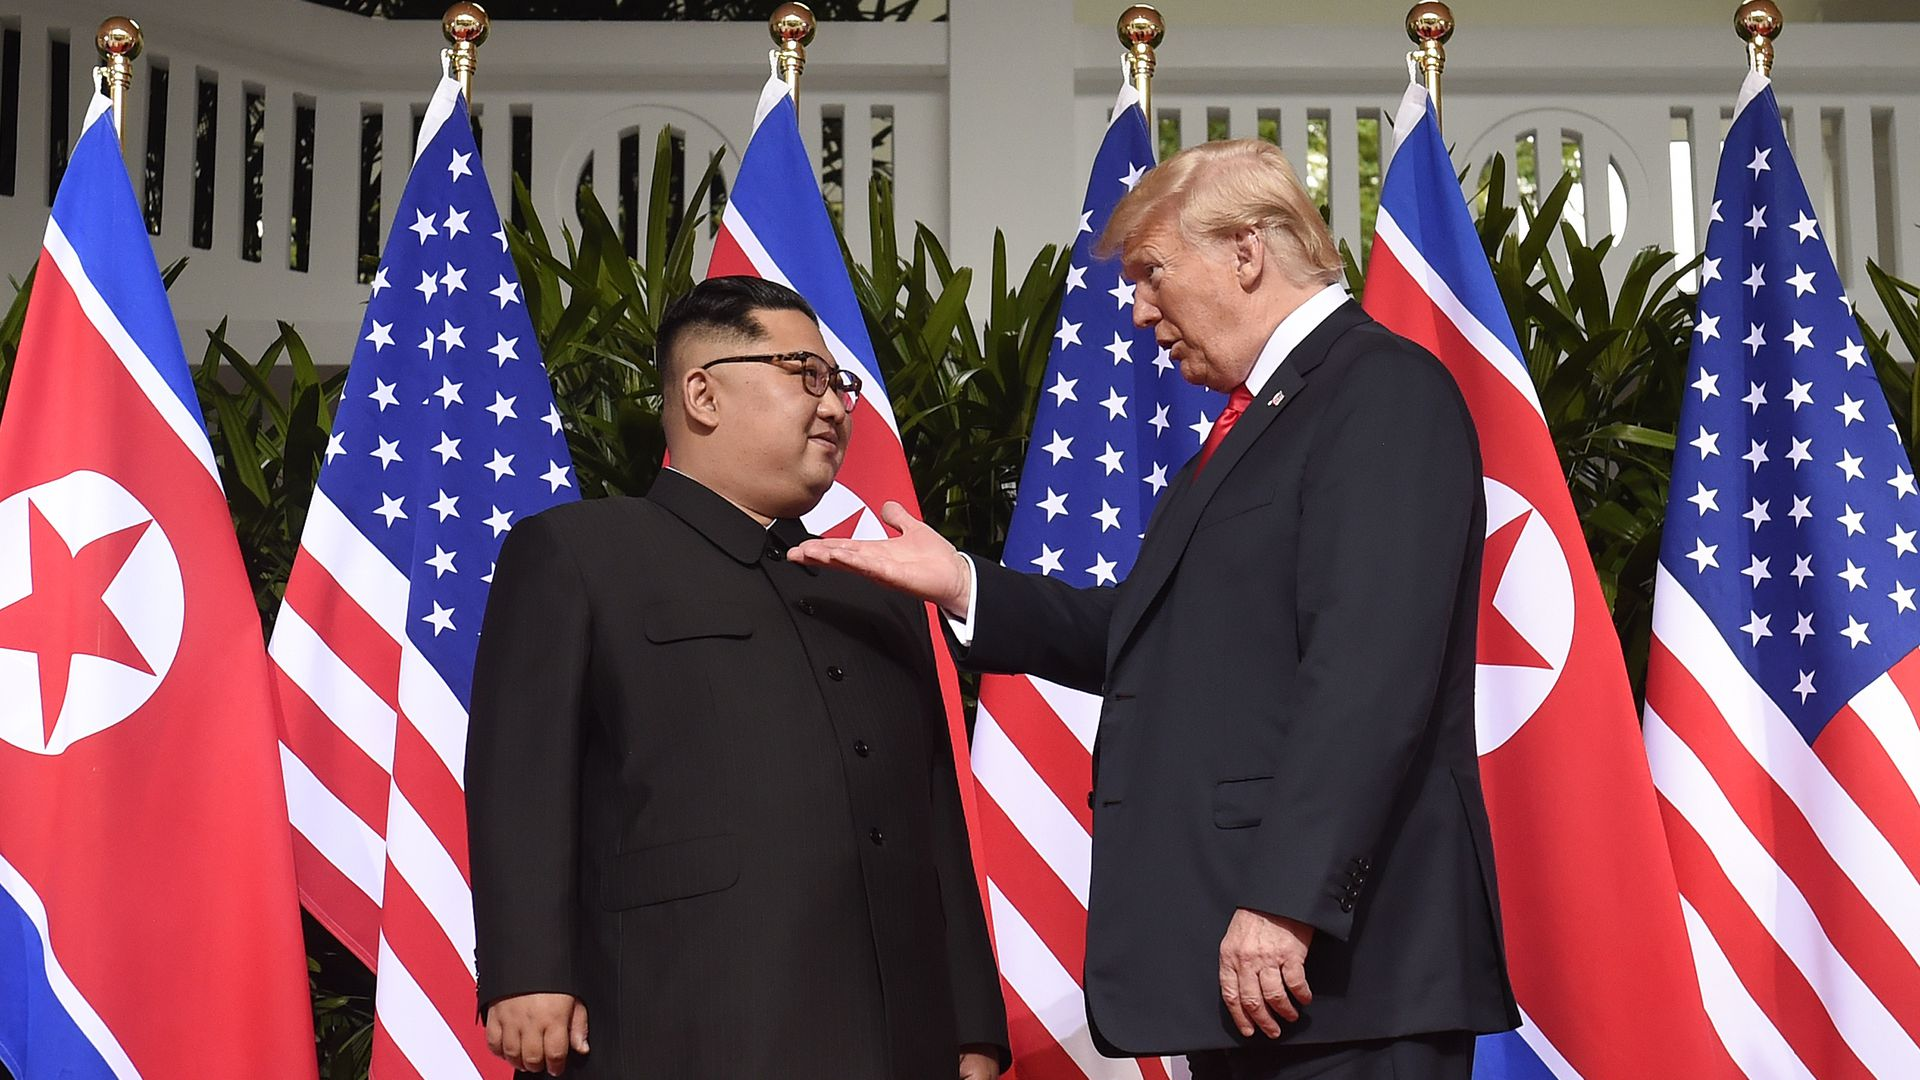 Kim Jong-un and Donald Trump in front of flags